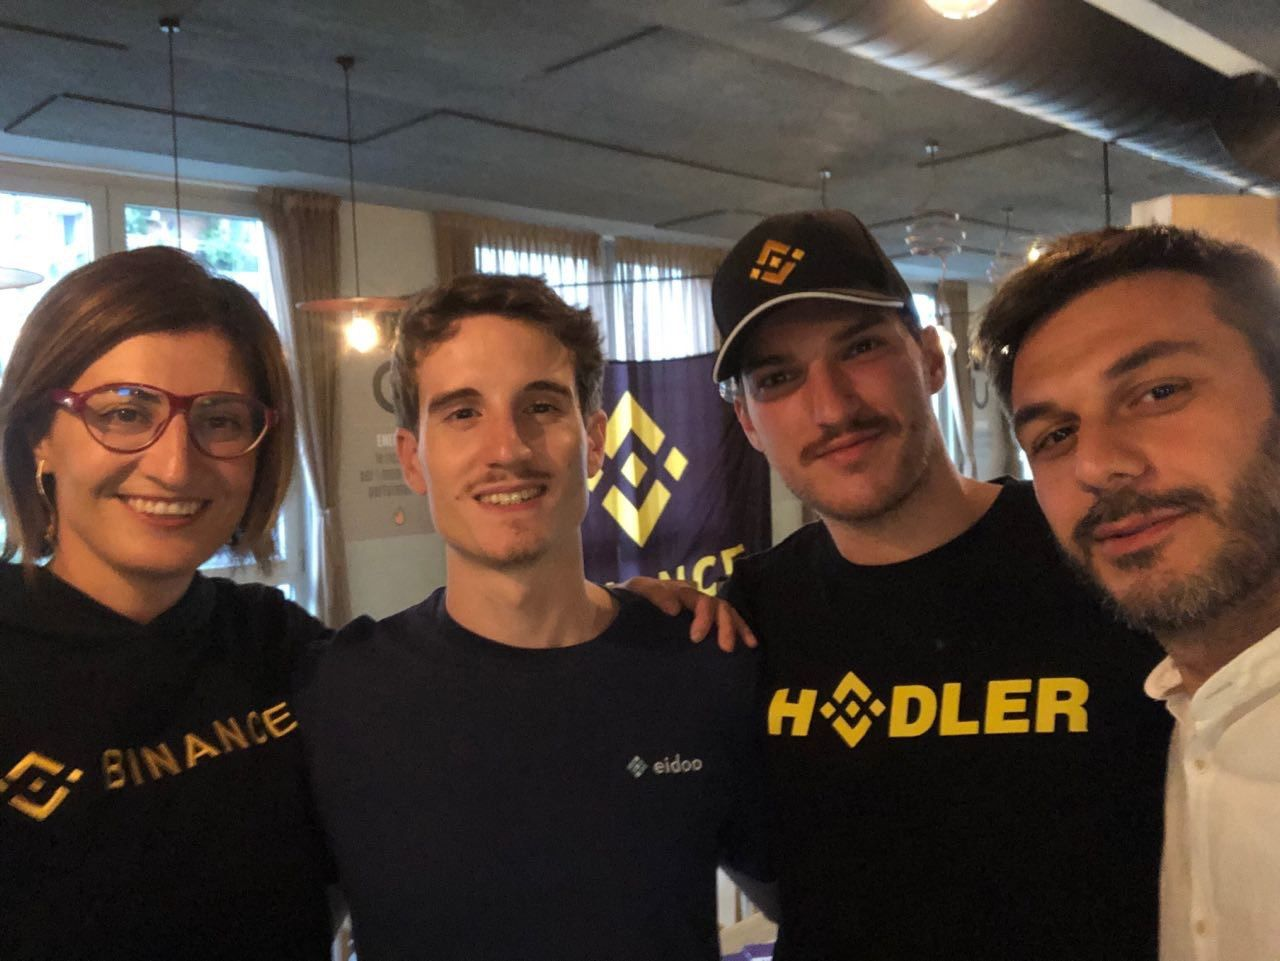 The Binance and Eidoo meetup in Milan was sold out